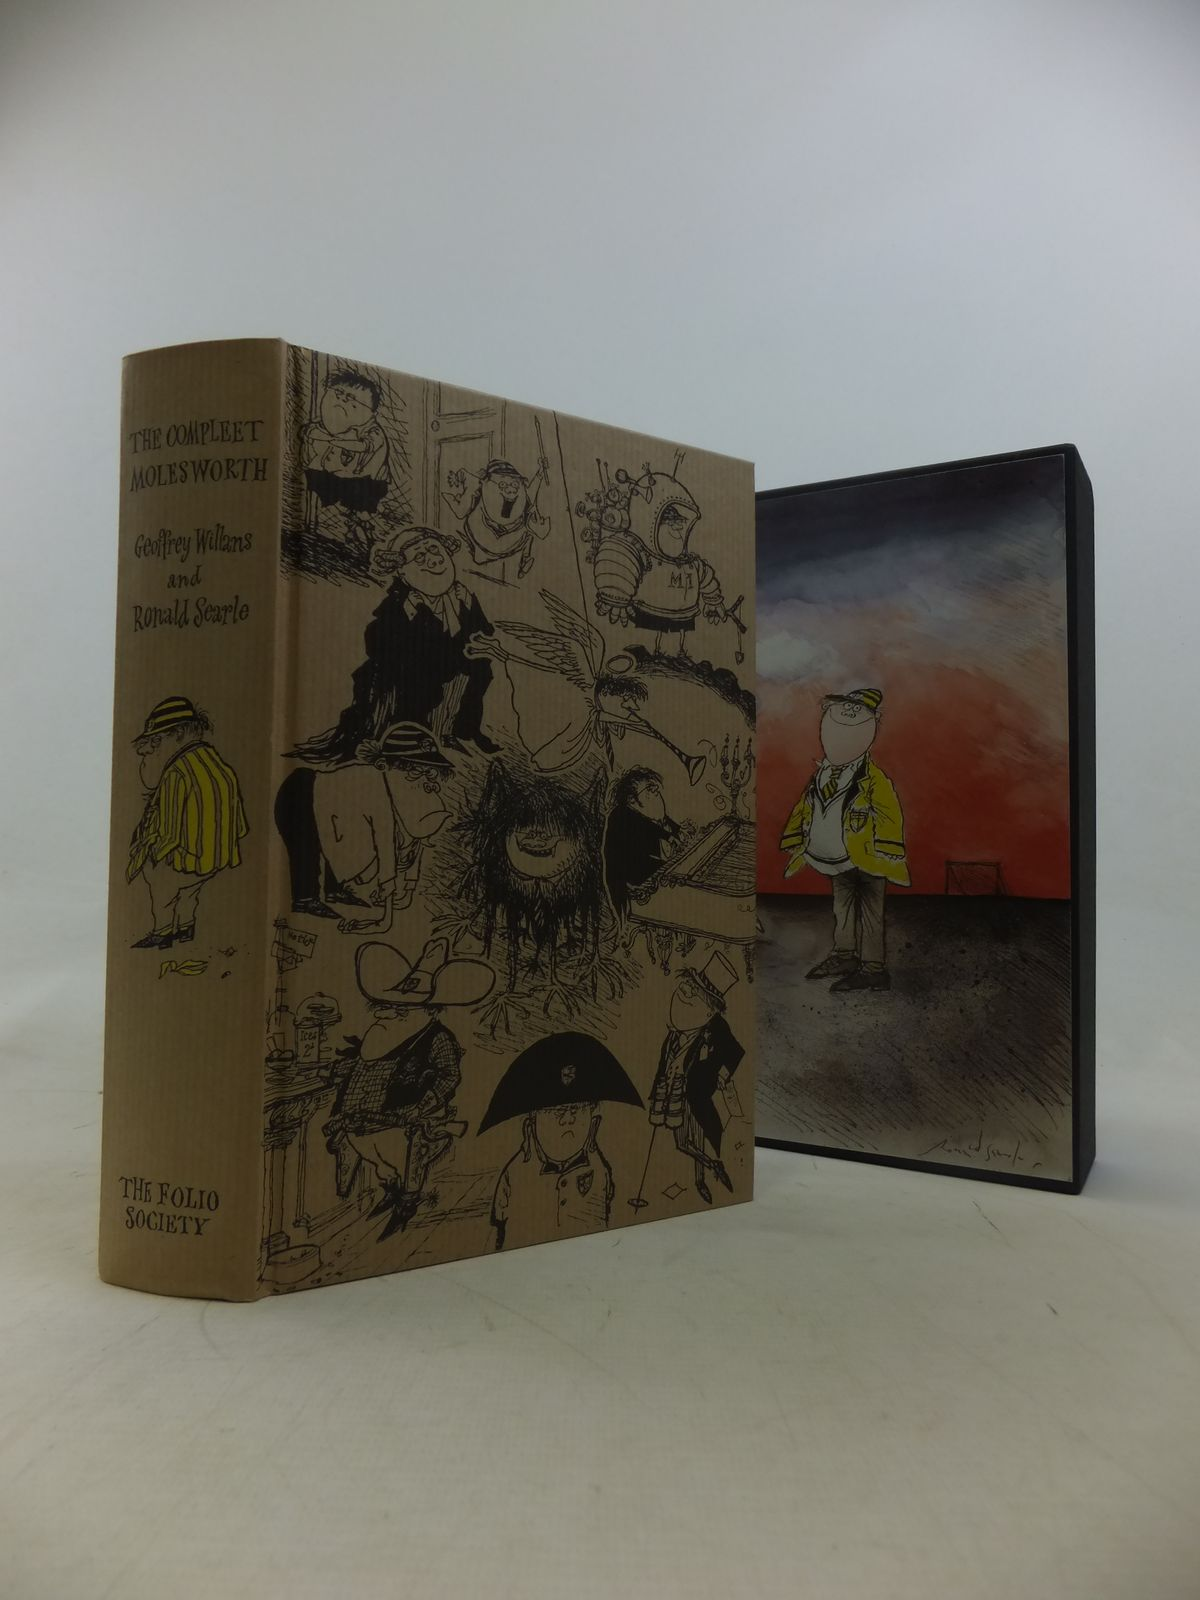 Photo of THE COMPLEET MOLESWORTH written by Willans, Geoffrey illustrated by Searle, Ronald published by Folio Society (STOCK CODE: 2117782)  for sale by Stella & Rose's Books